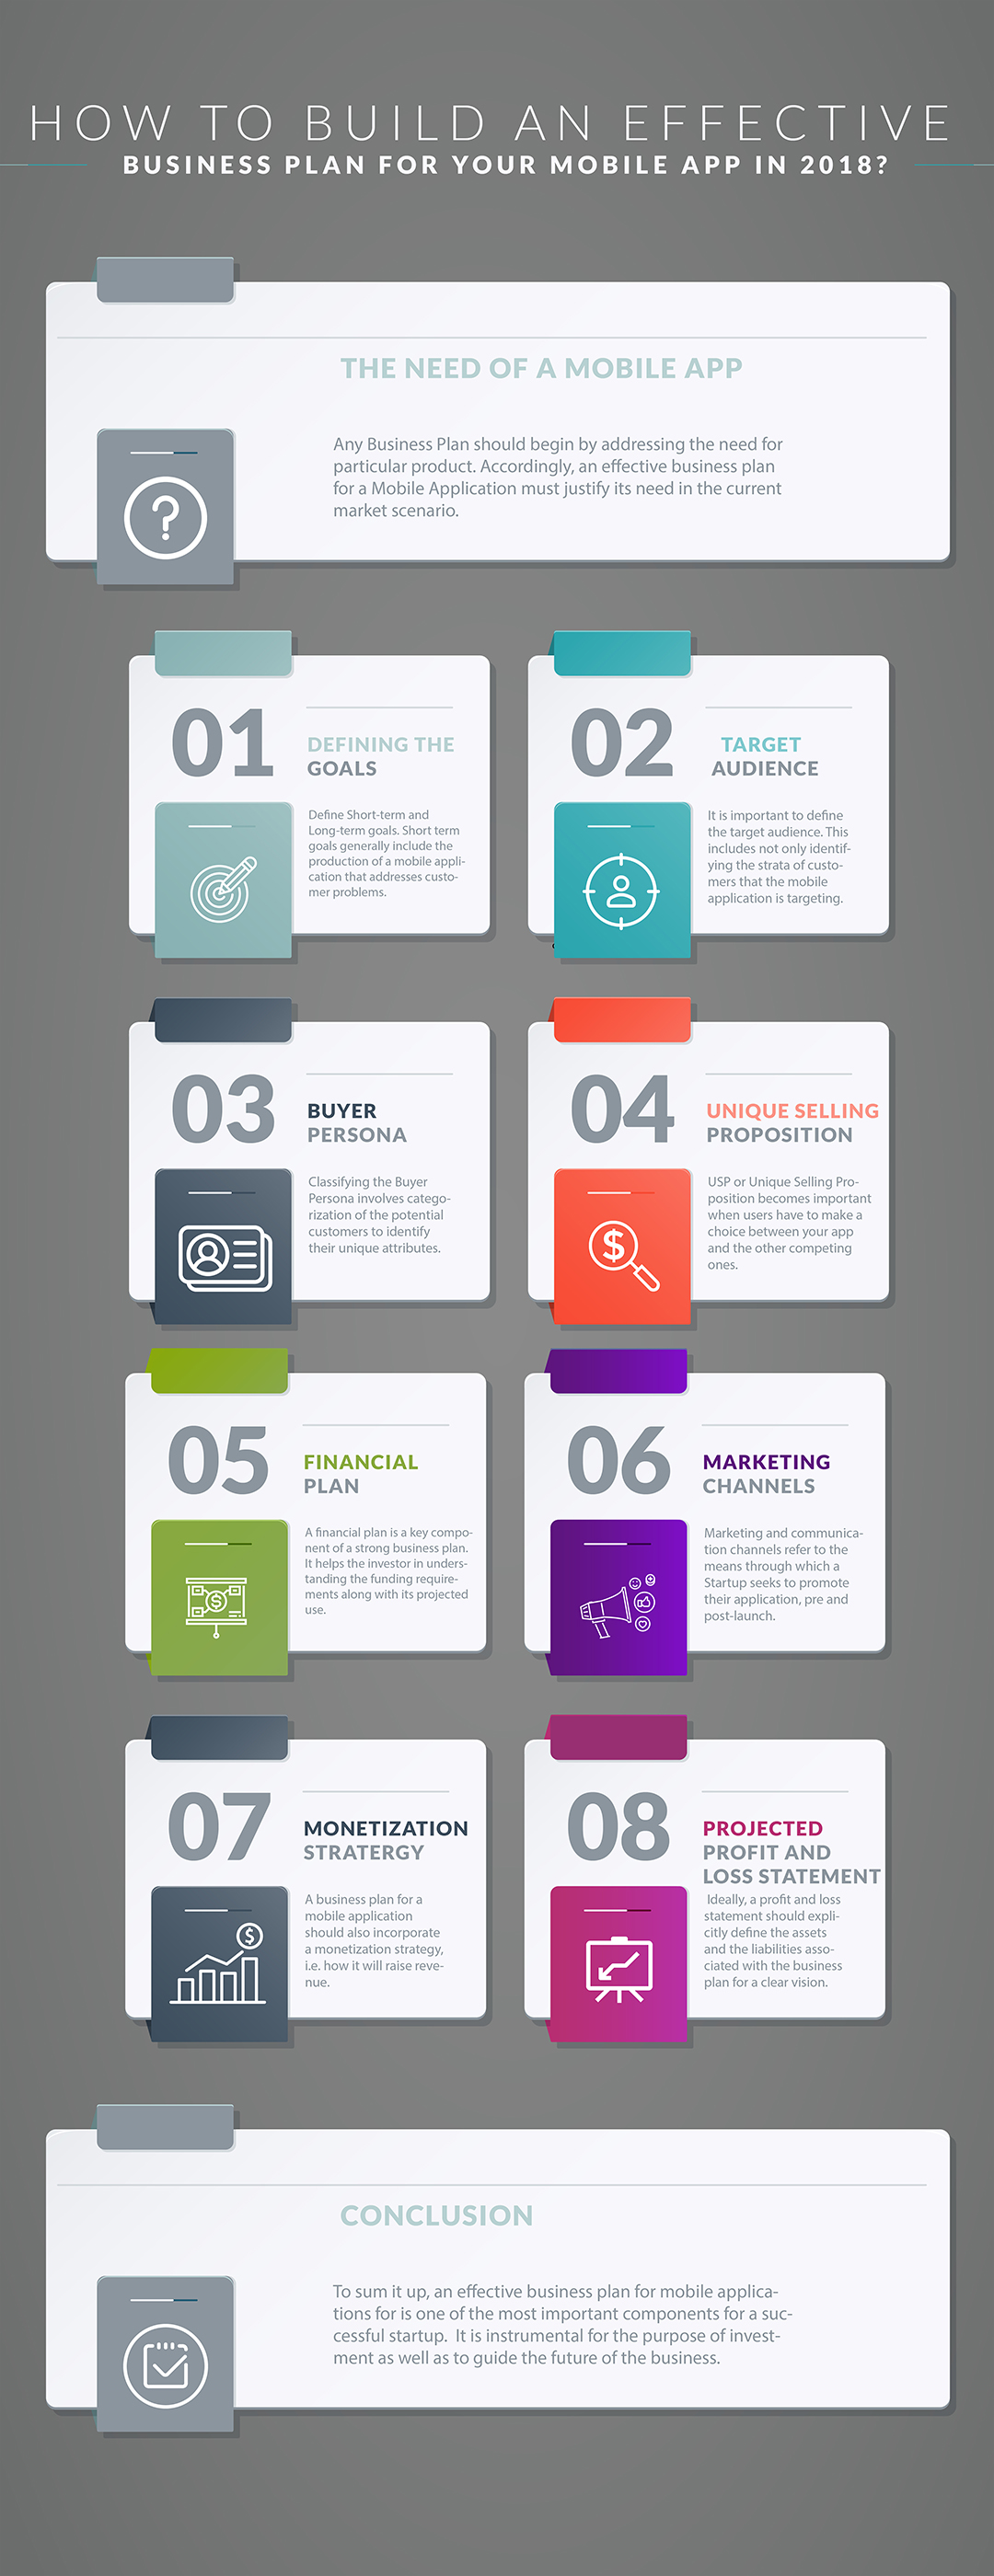 Business plan developing app custom category page thesis theme